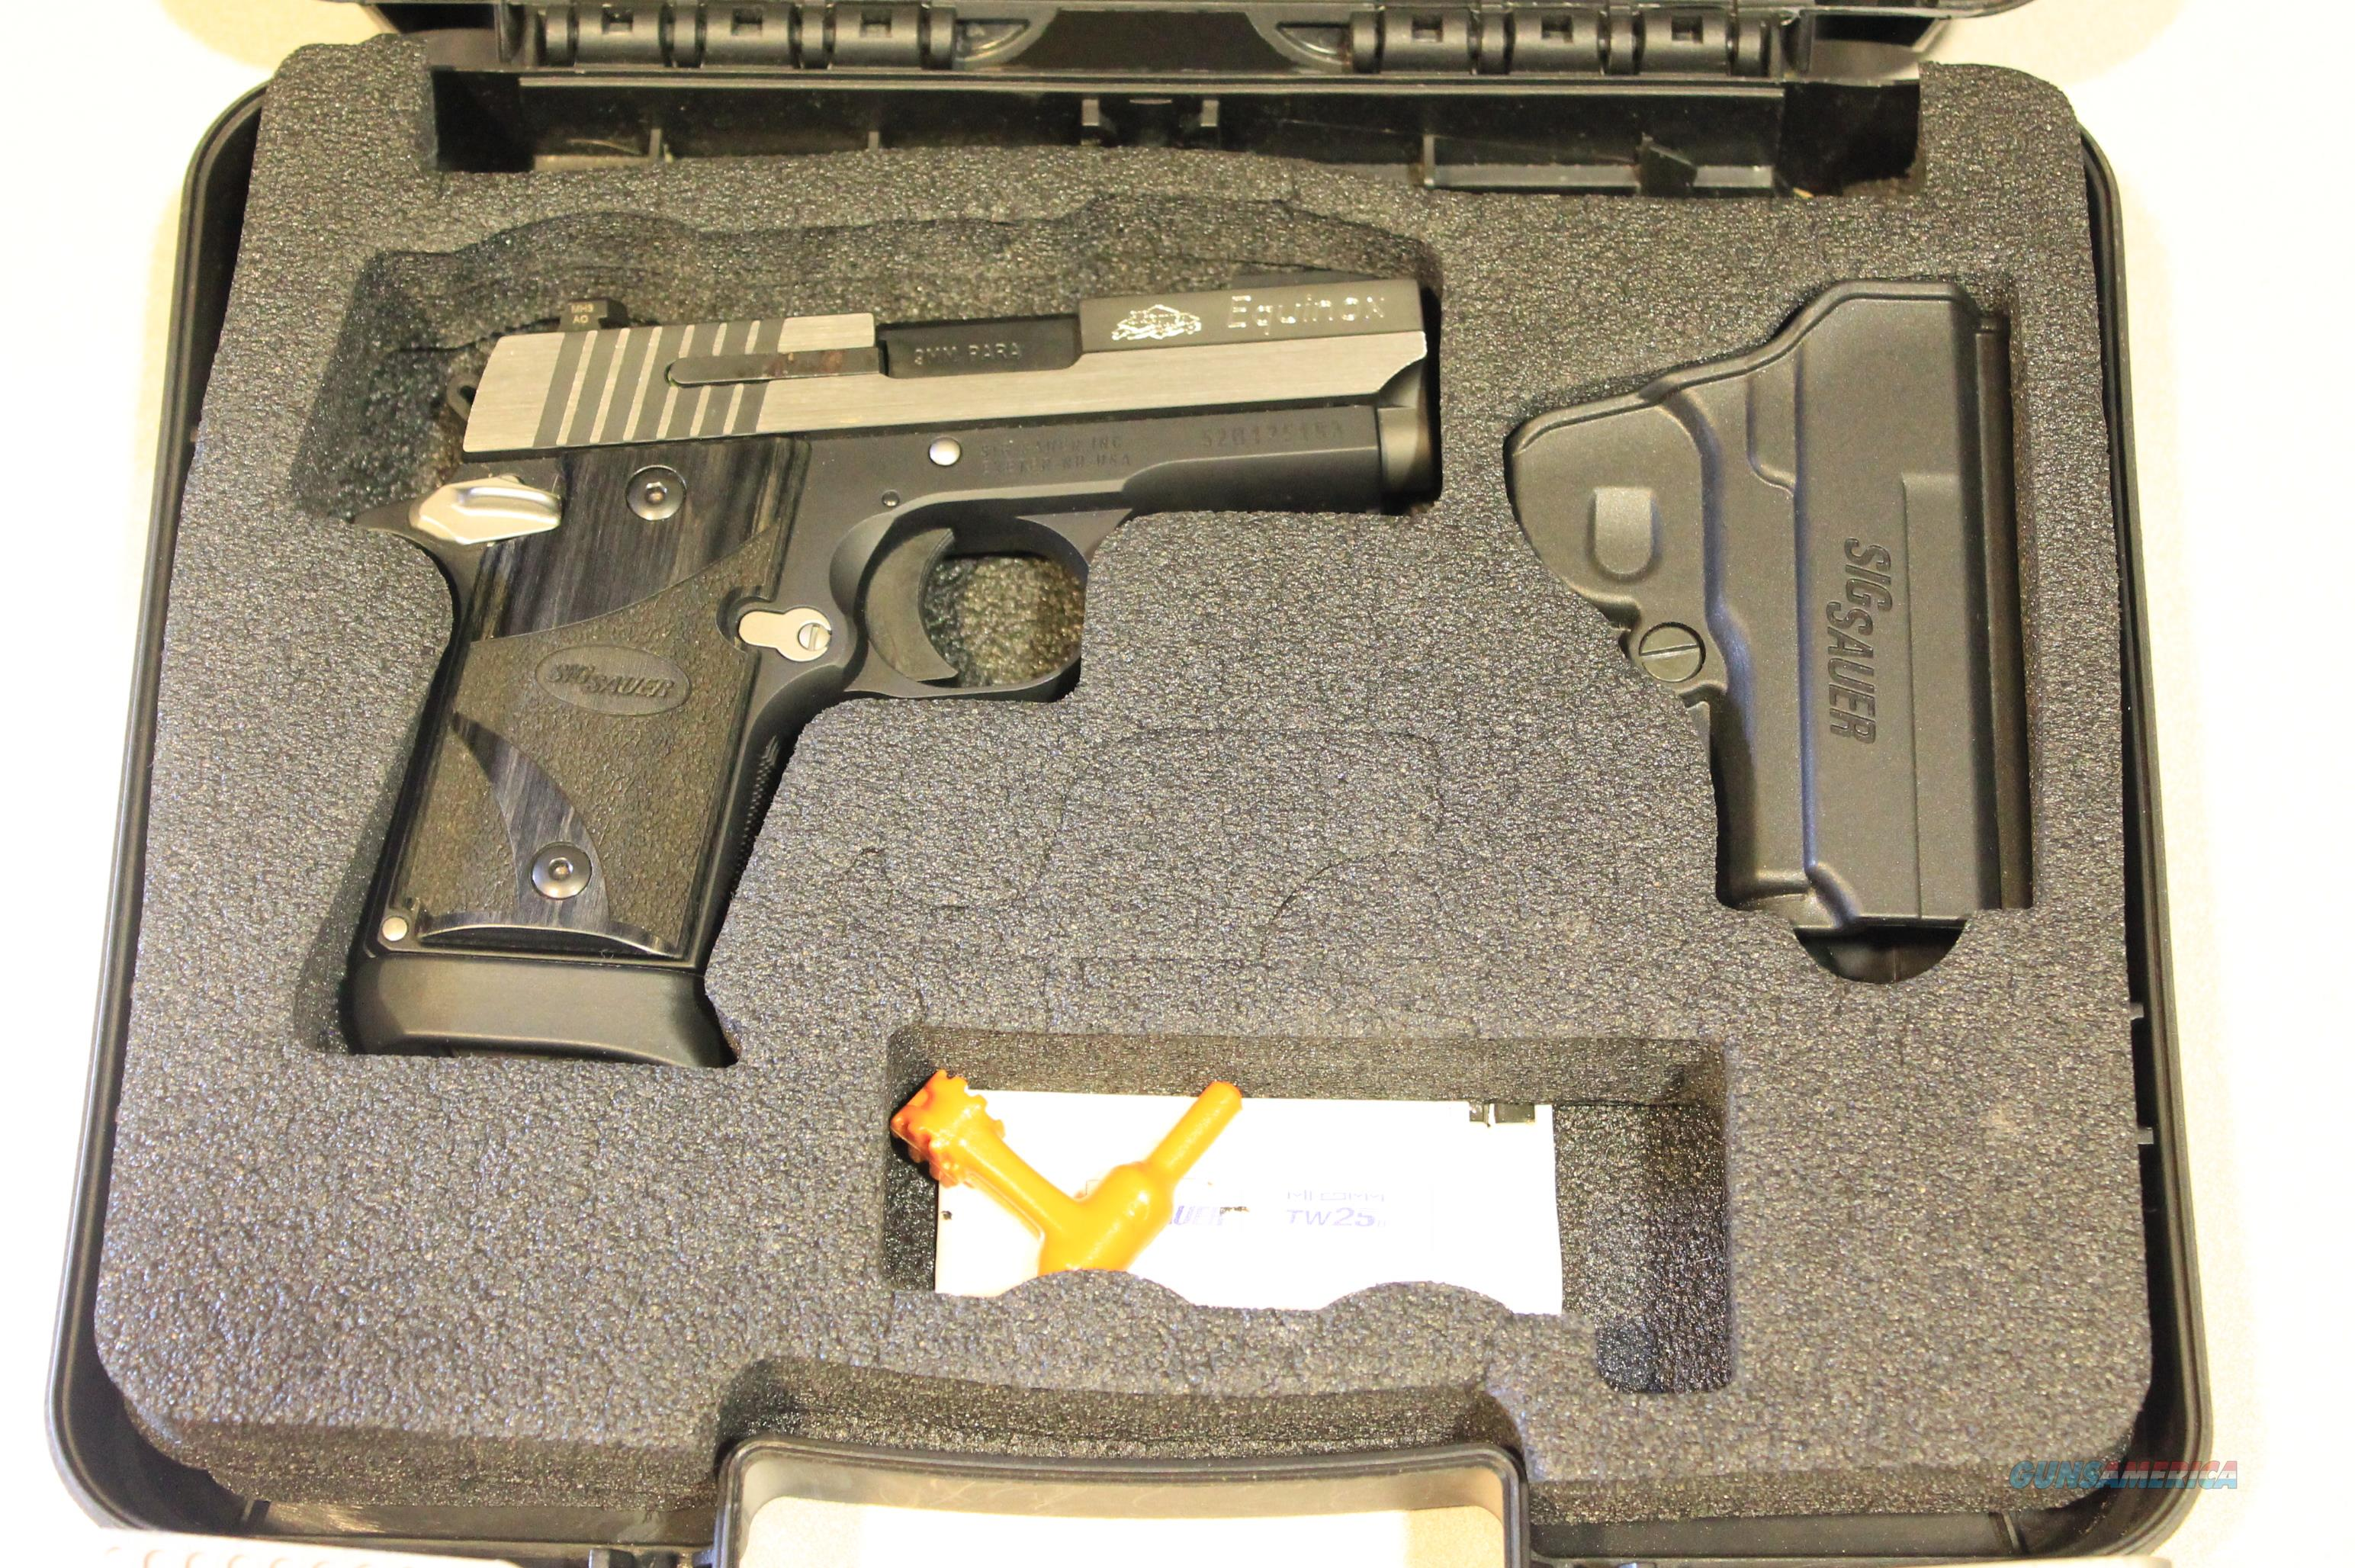 Sig Sauer P938 Equinox 9mm SAO AMBI 6rd + Case - Excellent Condition!  Guns > Pistols > Sig - Sauer/Sigarms Pistols > P938